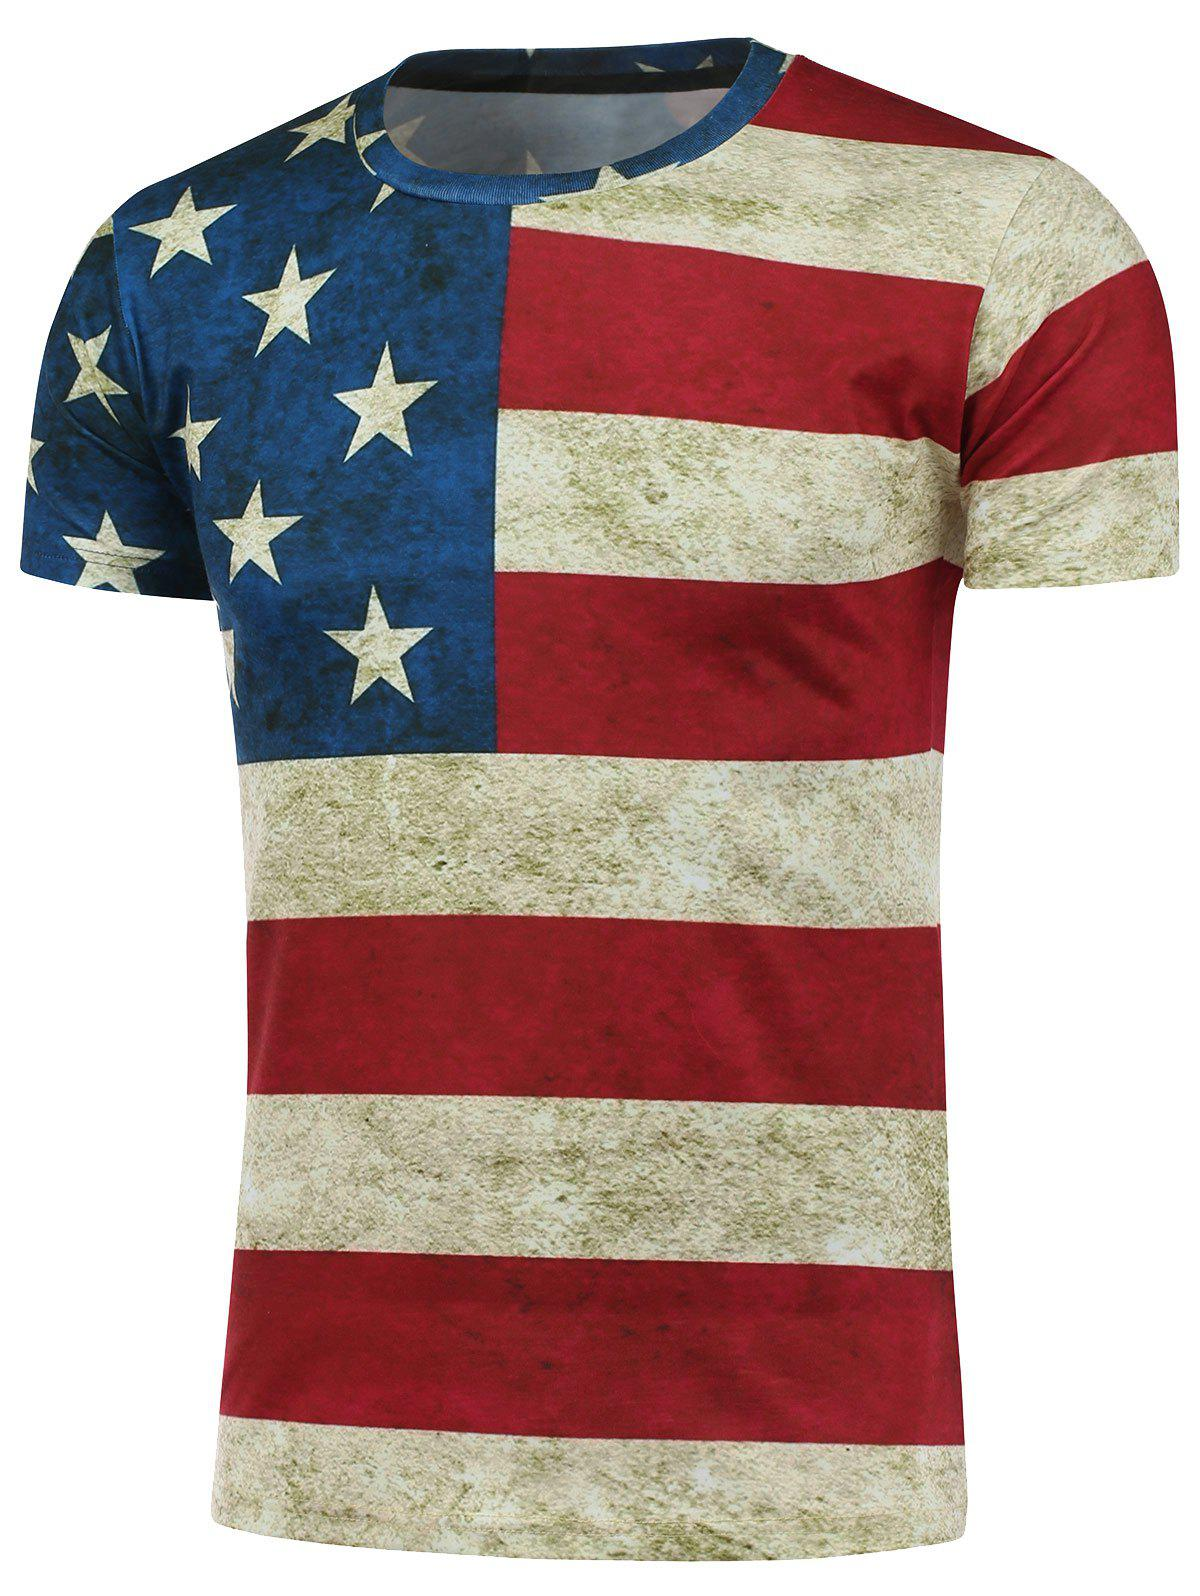 Short Sleeve Crew Neck Distressed American Flag T-ShirtMEN<br><br>Size: M; Color: COLORMIX; Style: Fashion; Material: Polyester; Sleeve Length: Short; Collar: Crew Neck; Pattern Type: Striped; Weight: 0.2430kg; Package Contents: 1 x Tee;